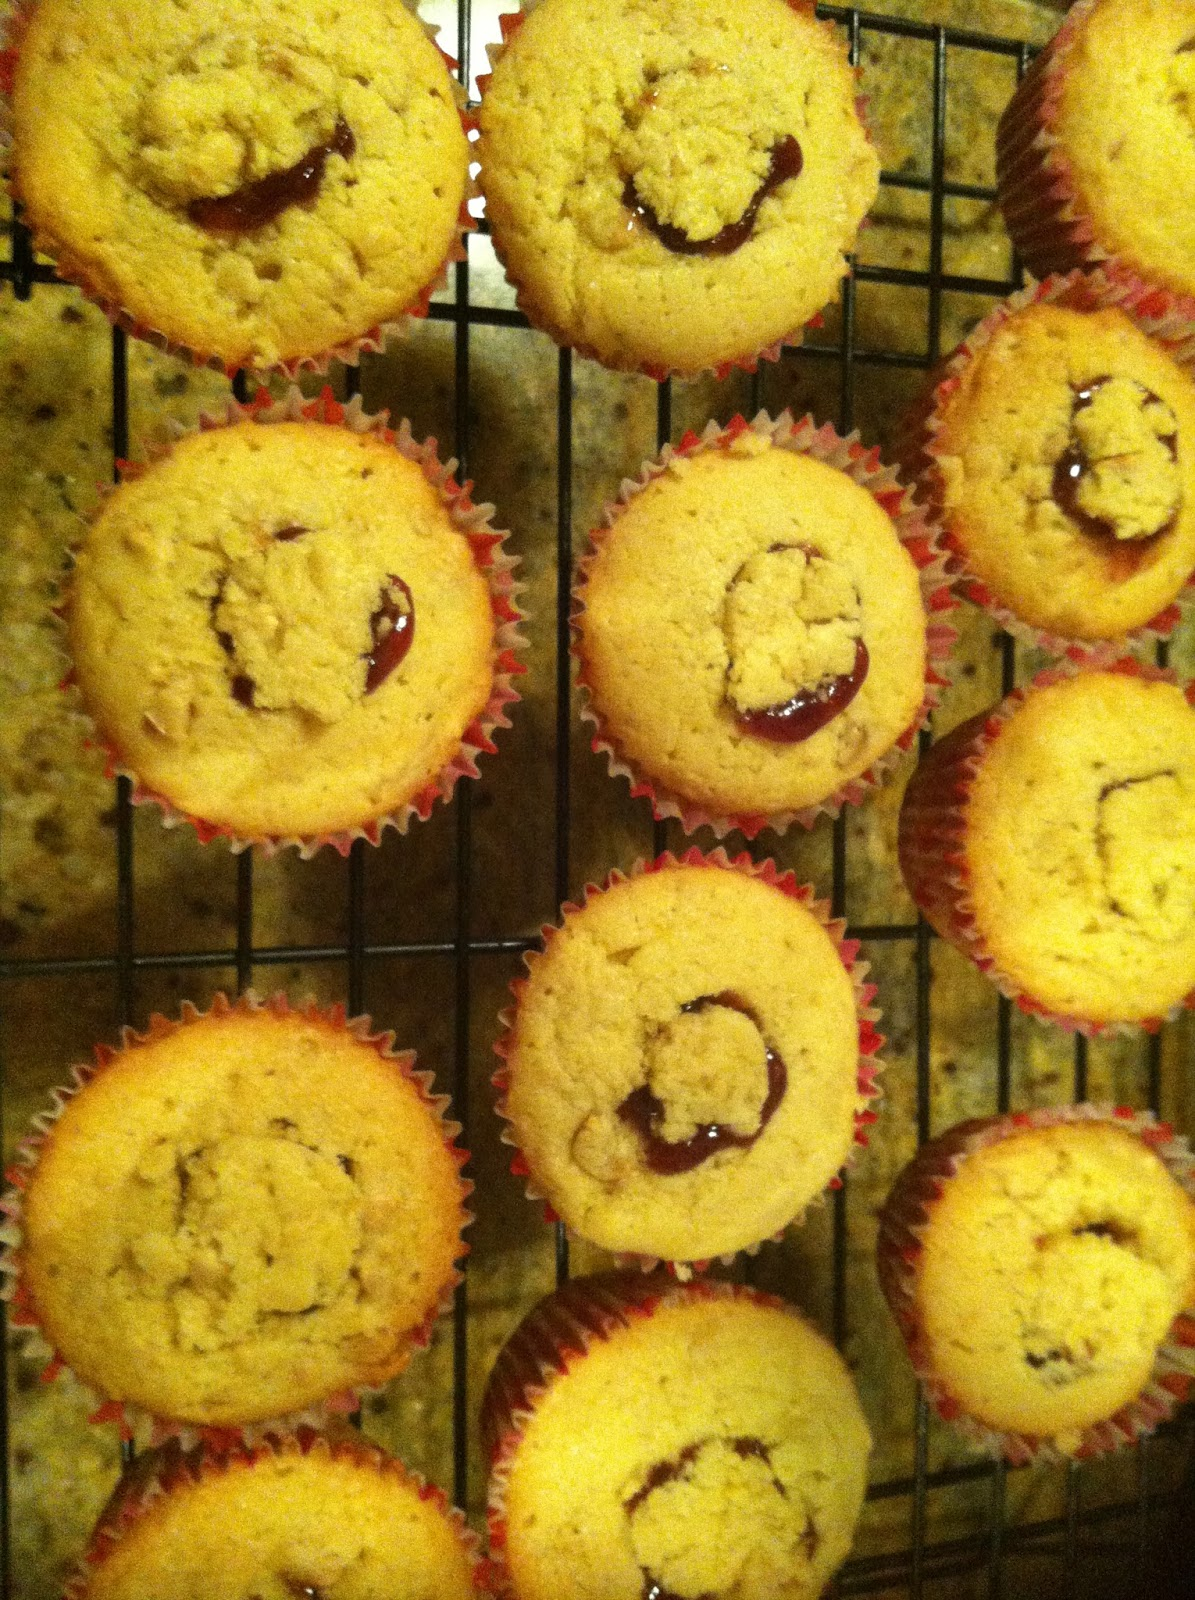 Peanut Butter and Jelly Cupcakes and Stout Cupcakes for RSPCA